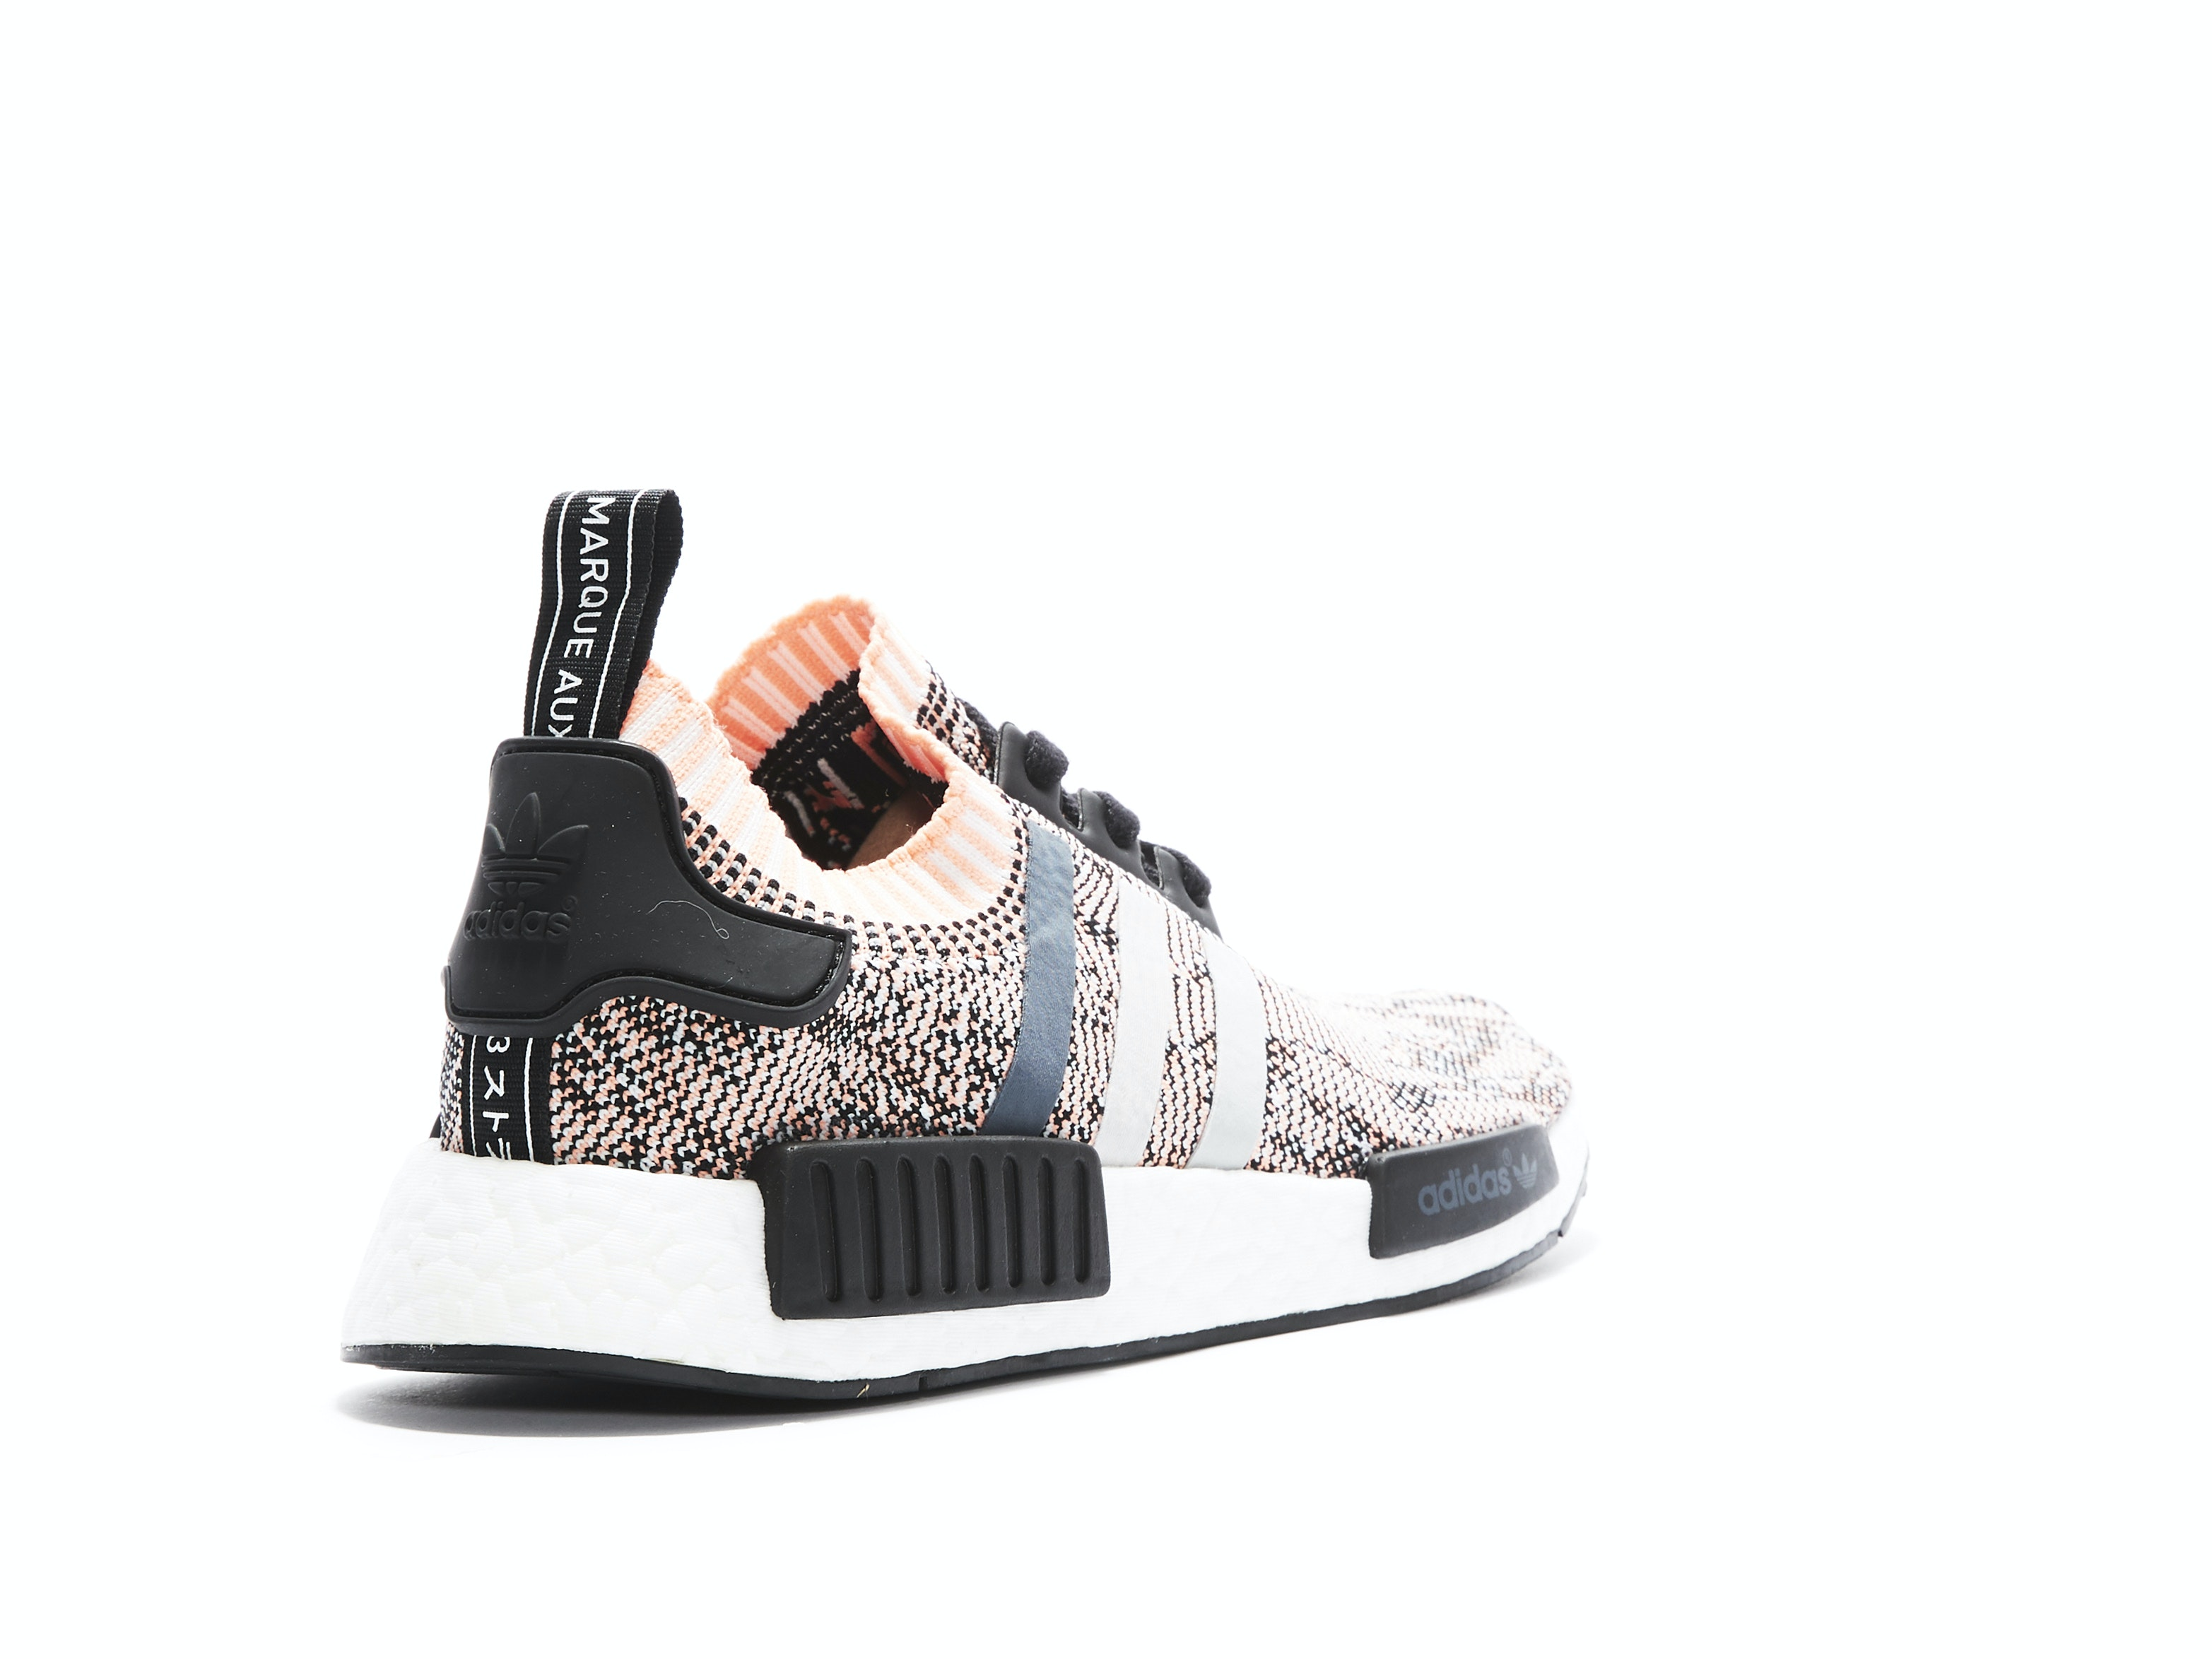 26fe567d0 Sun Glow Primeknit NMD R1 (W). 100% AuthenticSold out! Adidas   BB2361